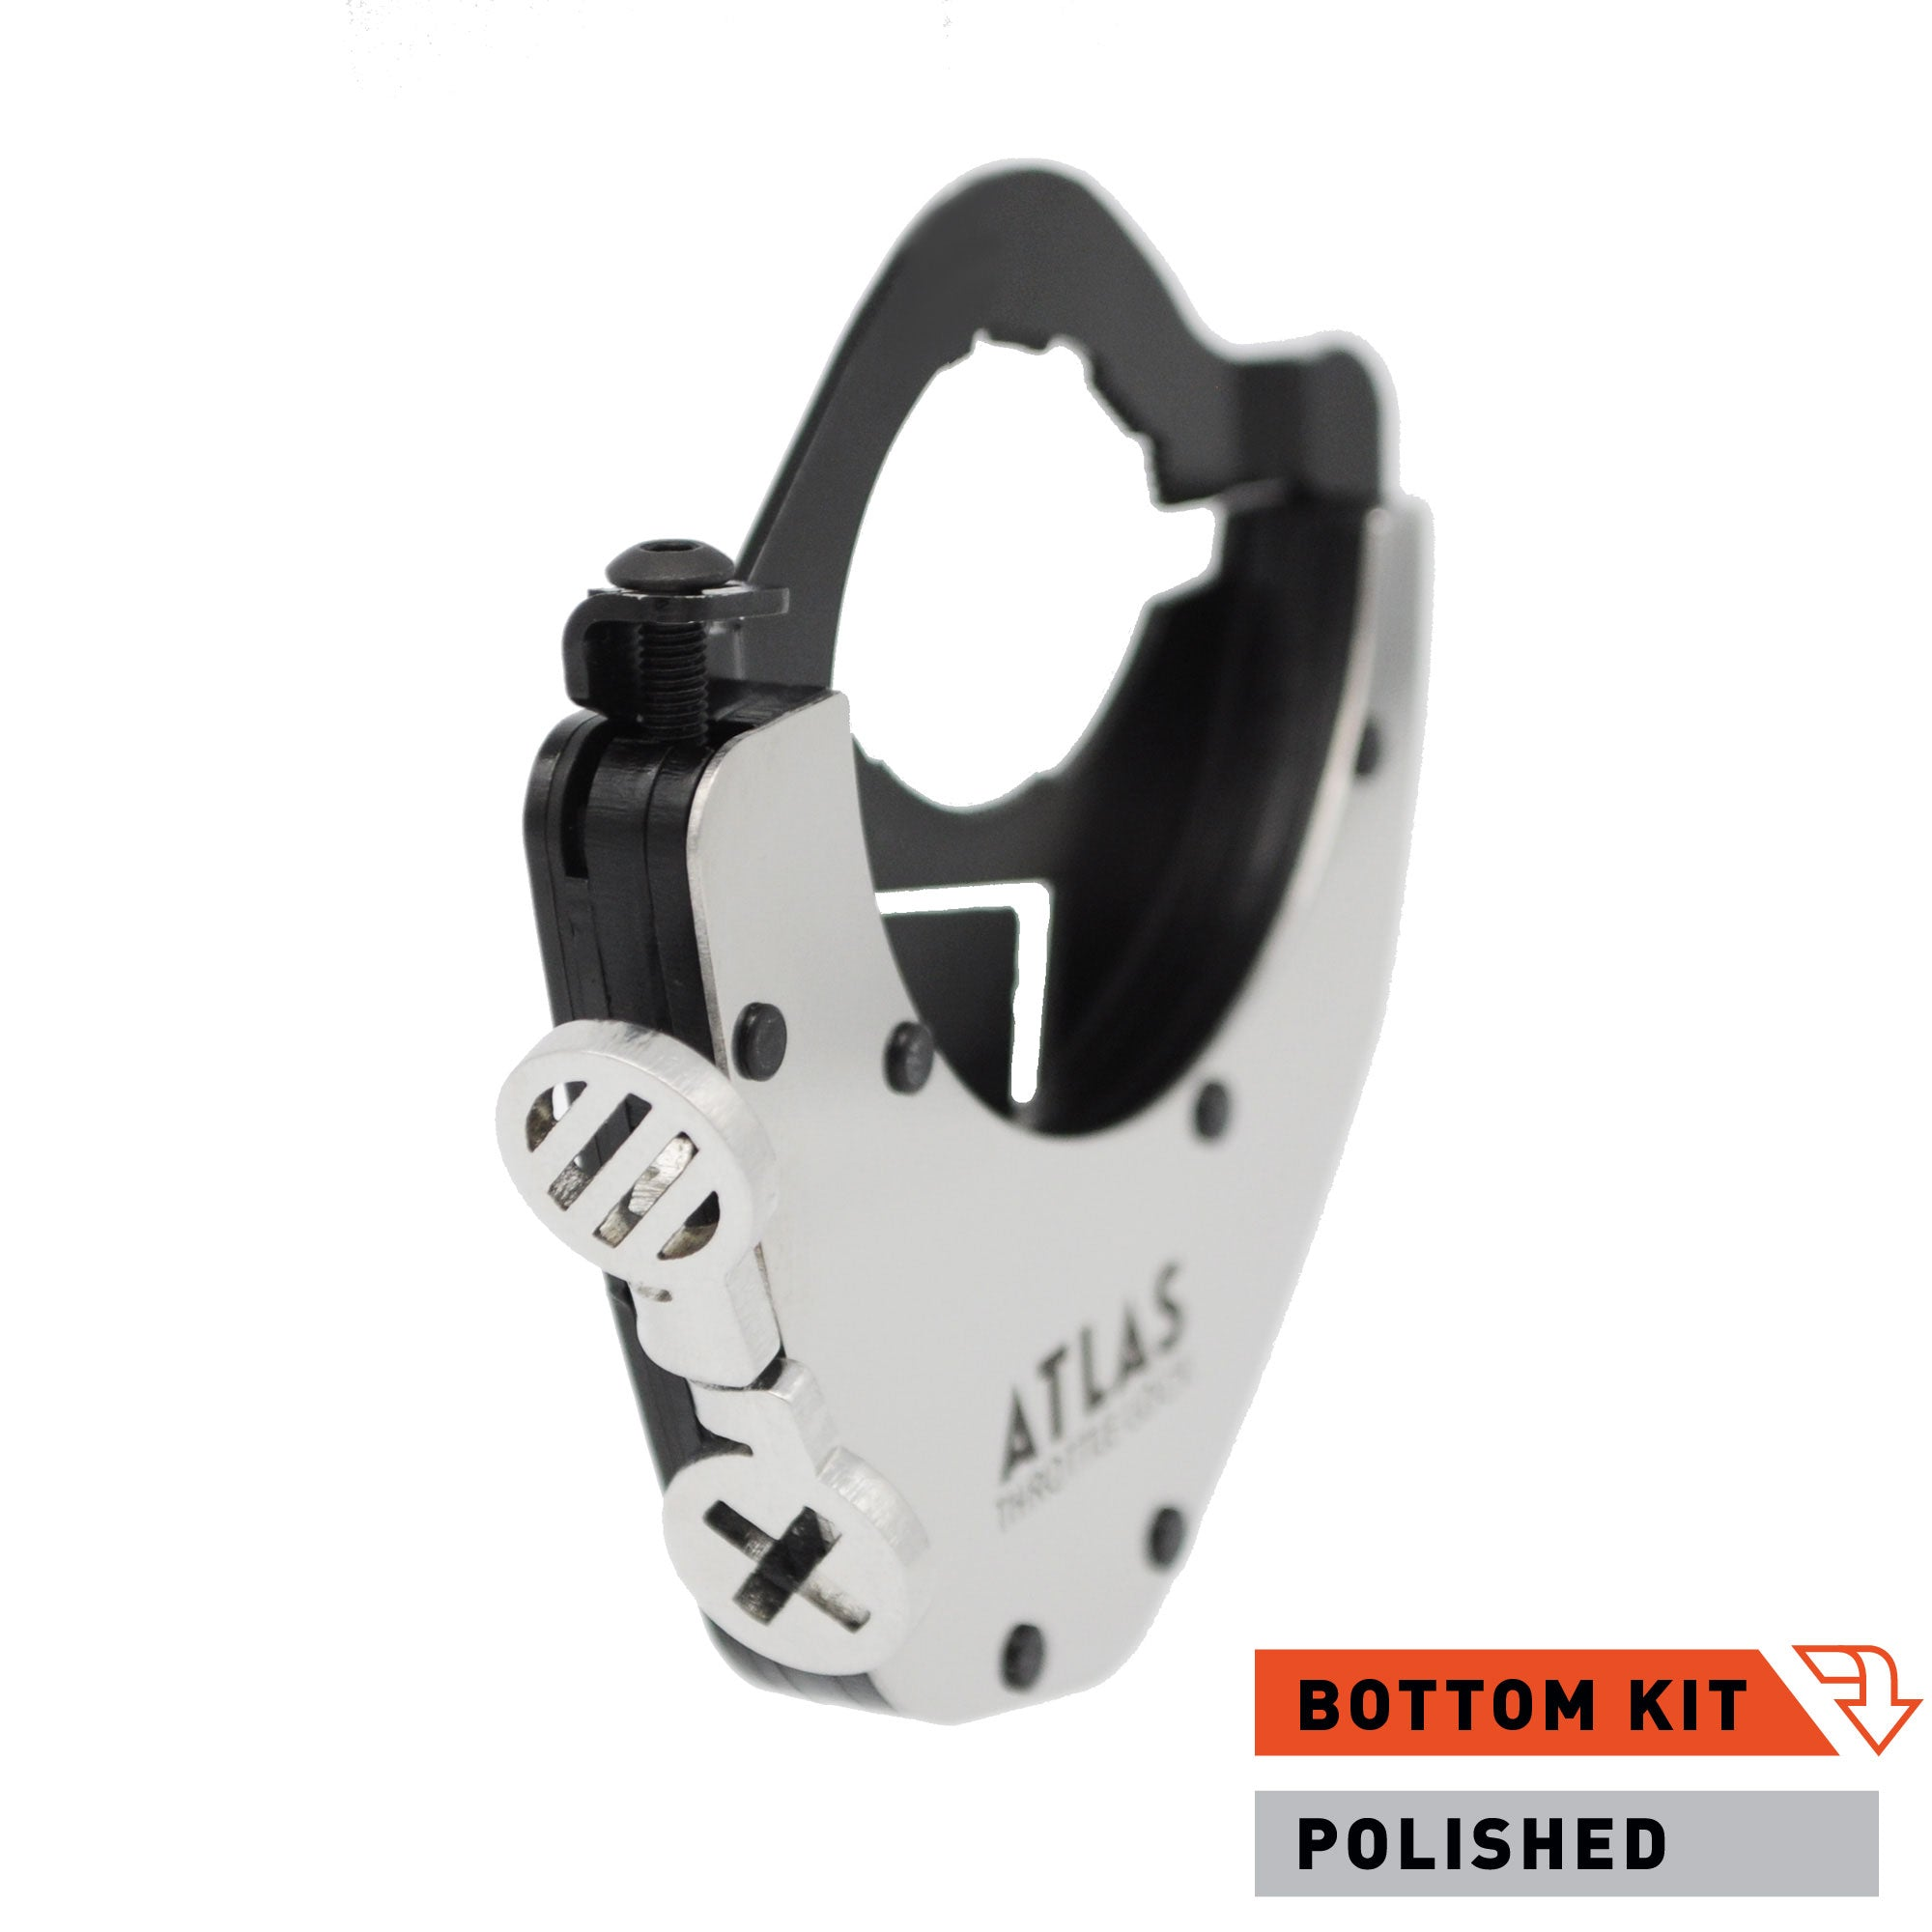 Triumph Motorcycles - ATLAS Throttle Lock